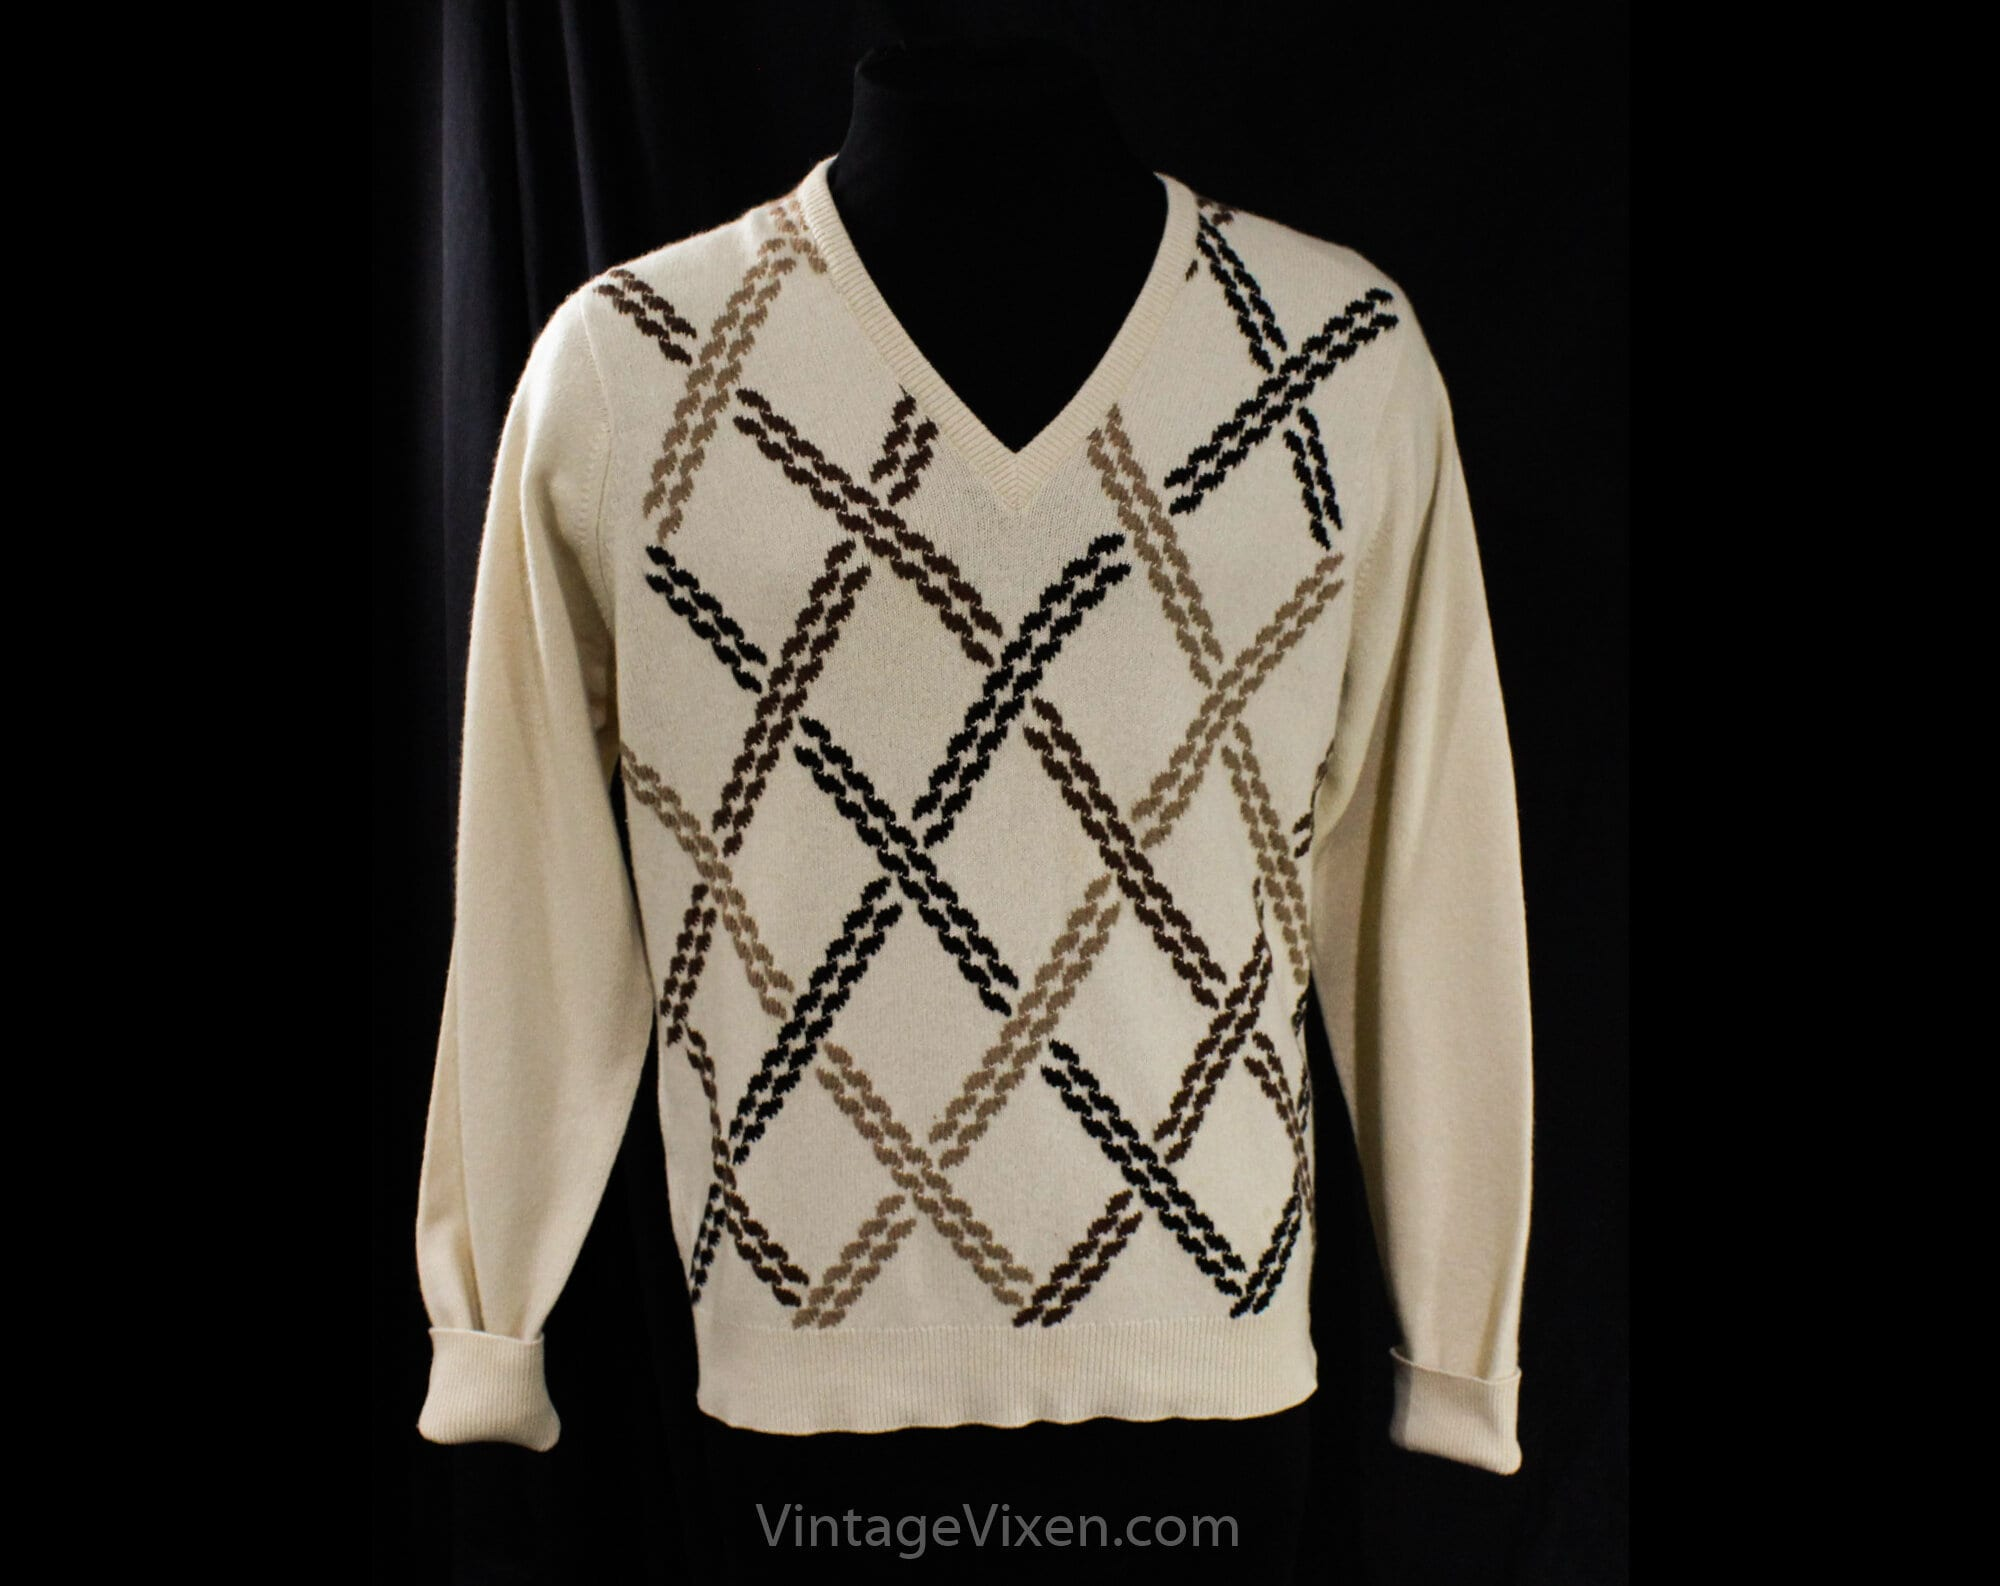 1950s Men's Ties, Bow Ties – Vintage, Skinny, Knit Mens Ballantyne Cashmere Sweater - Large Beige Taupe Brown Pullover Medium Luxury Knitwear Thick Intarsia Chest 44 $139.99 AT vintagedancer.com